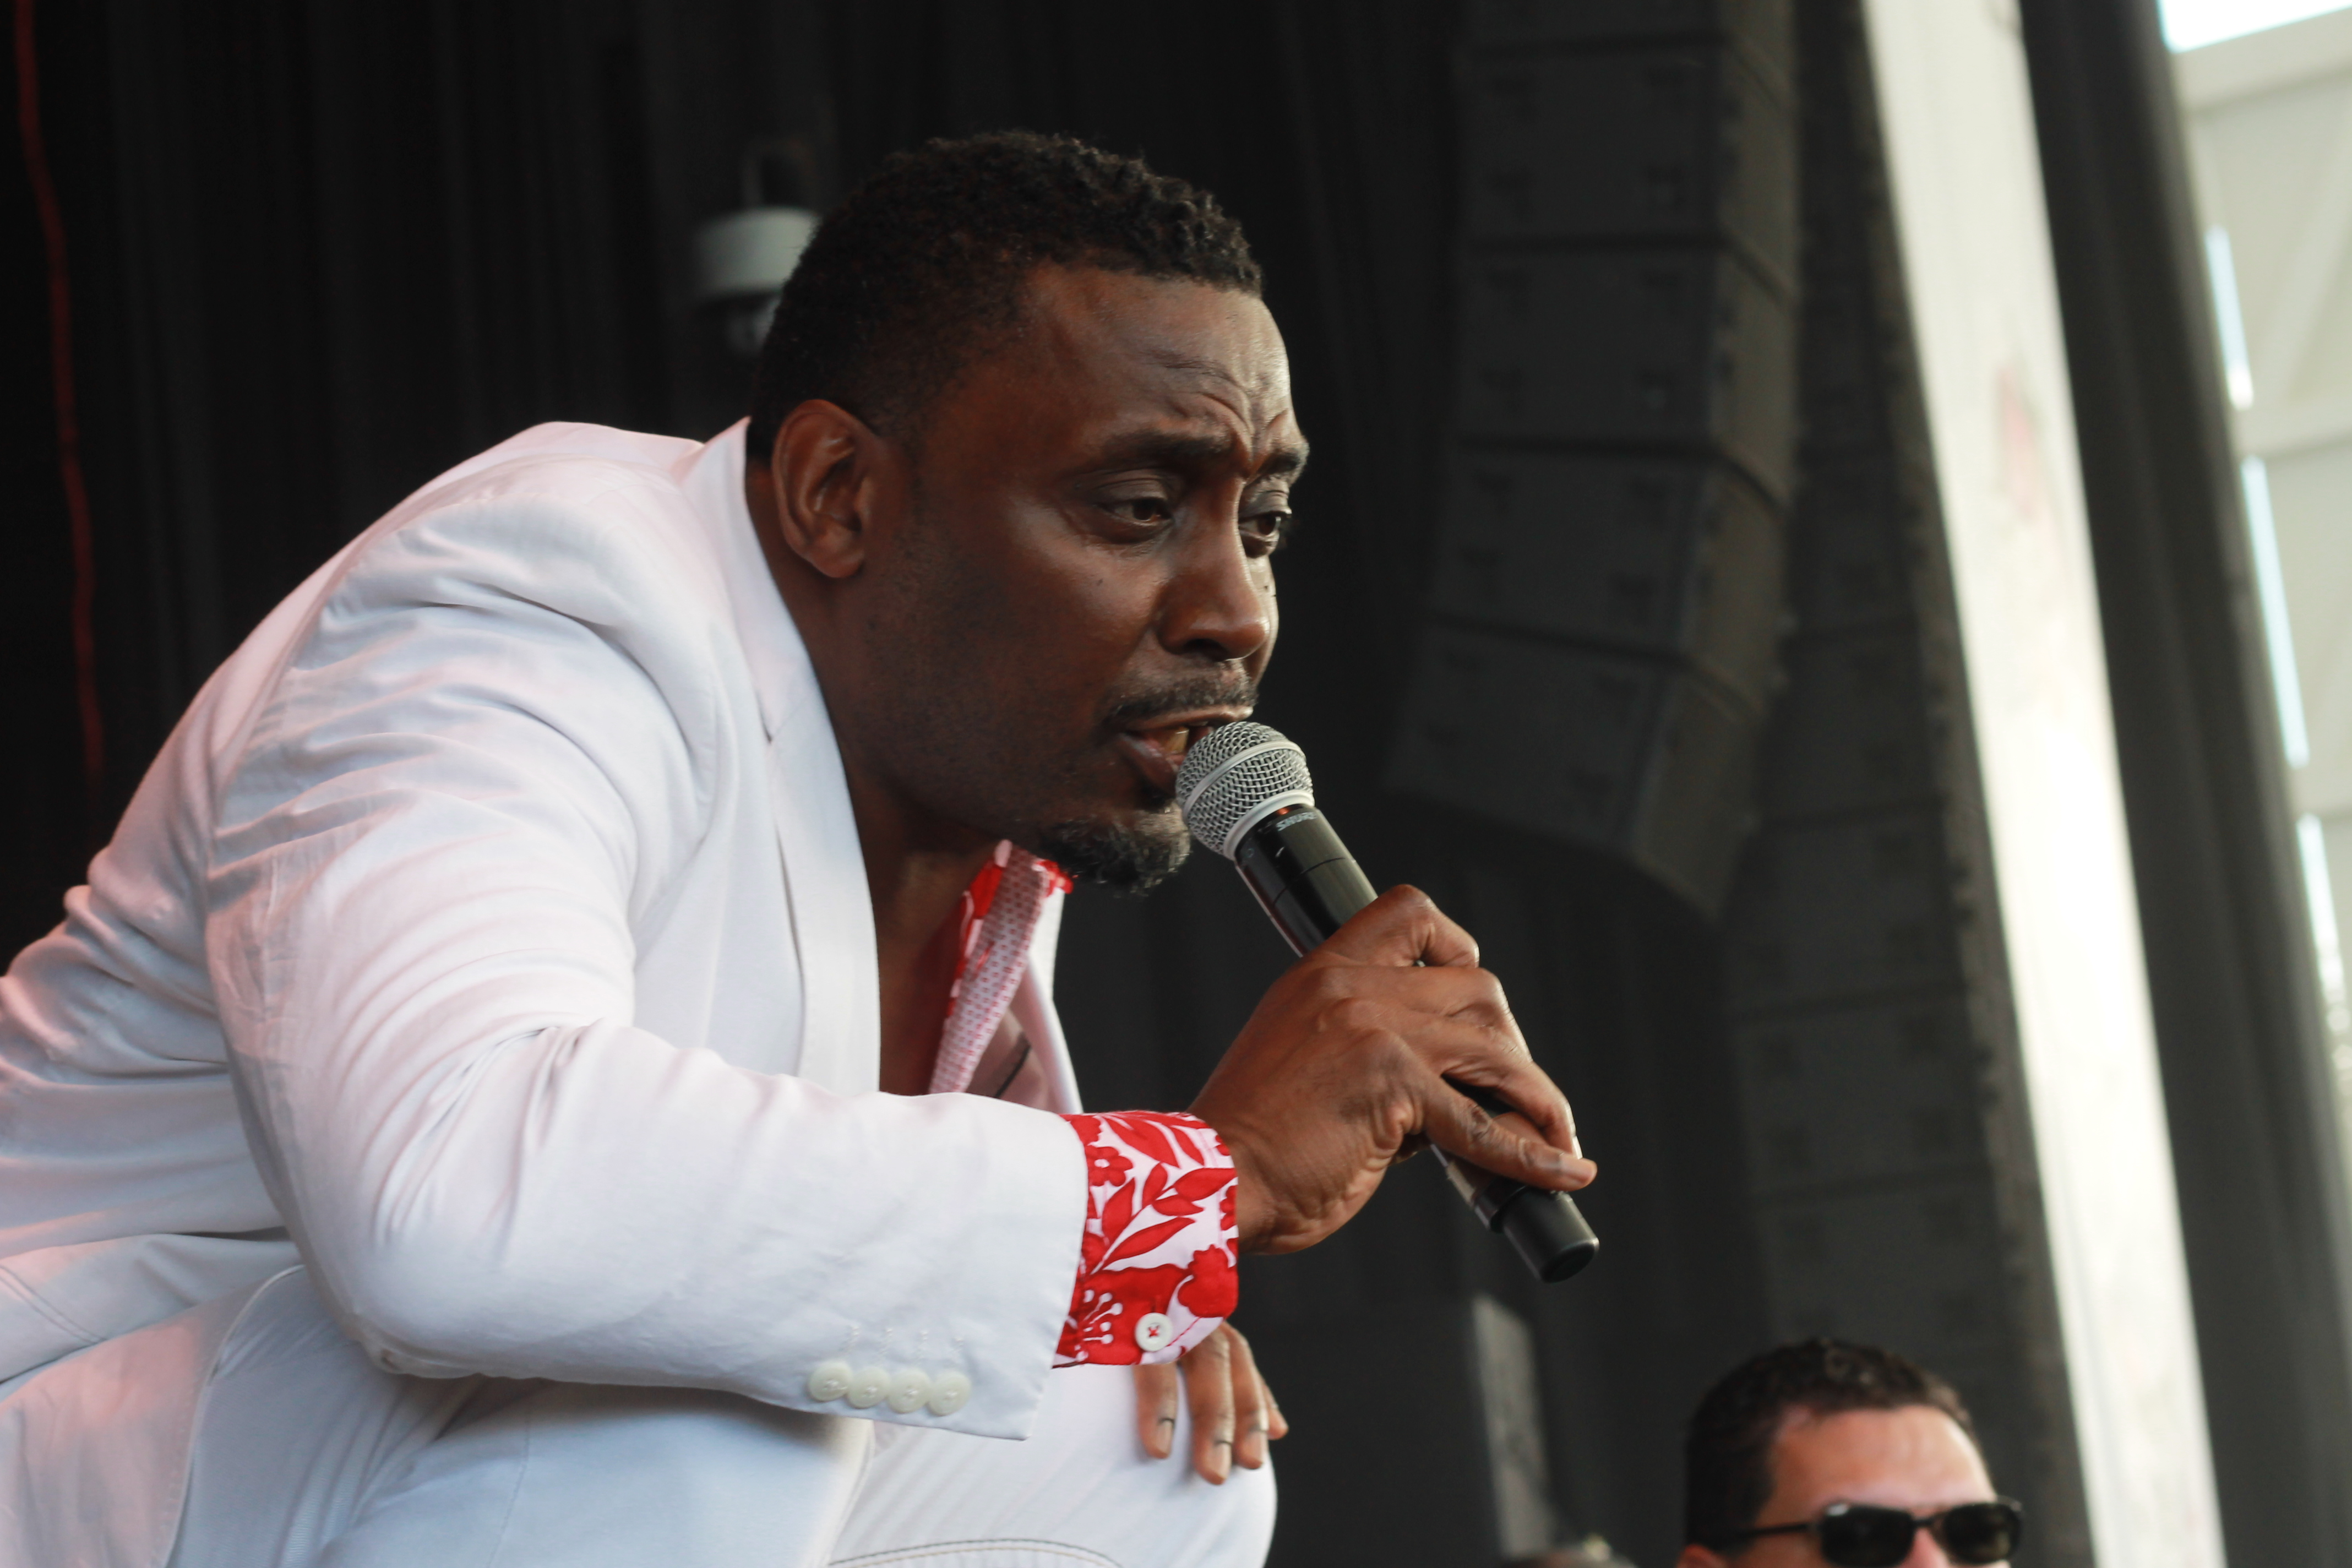 Big Daddy Kane Kills The Stage At Kings Of The Mic Tour [PHOTOS]